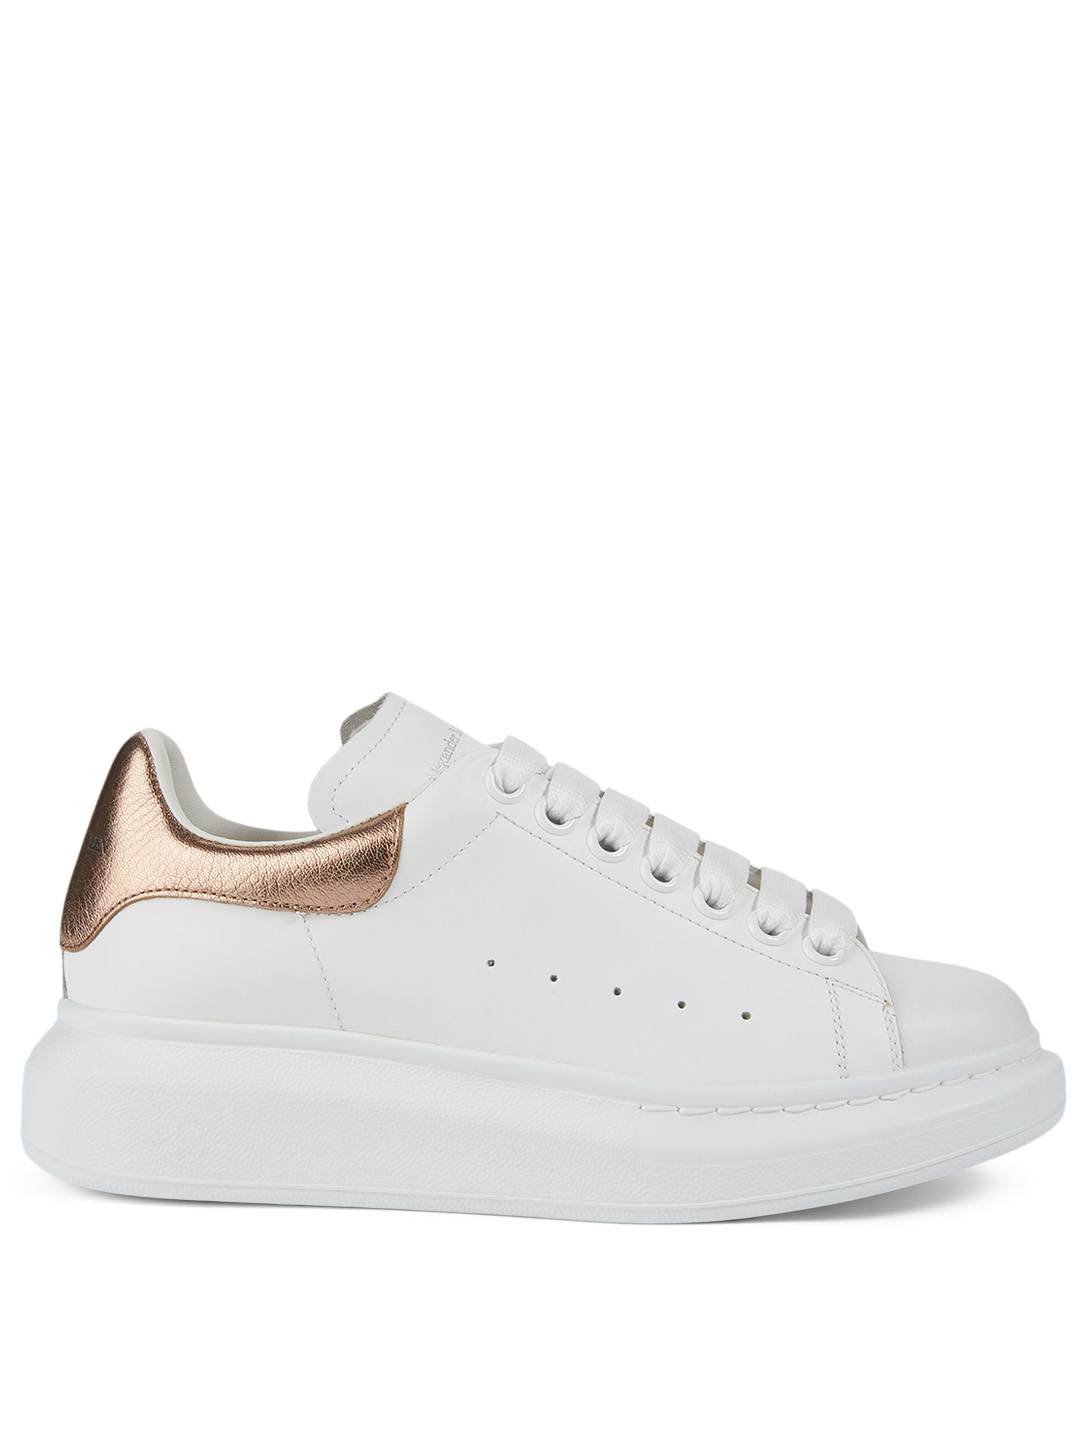 ALEXANDER MCQUEEN Oversized Leather Sneakers Women's Metallic